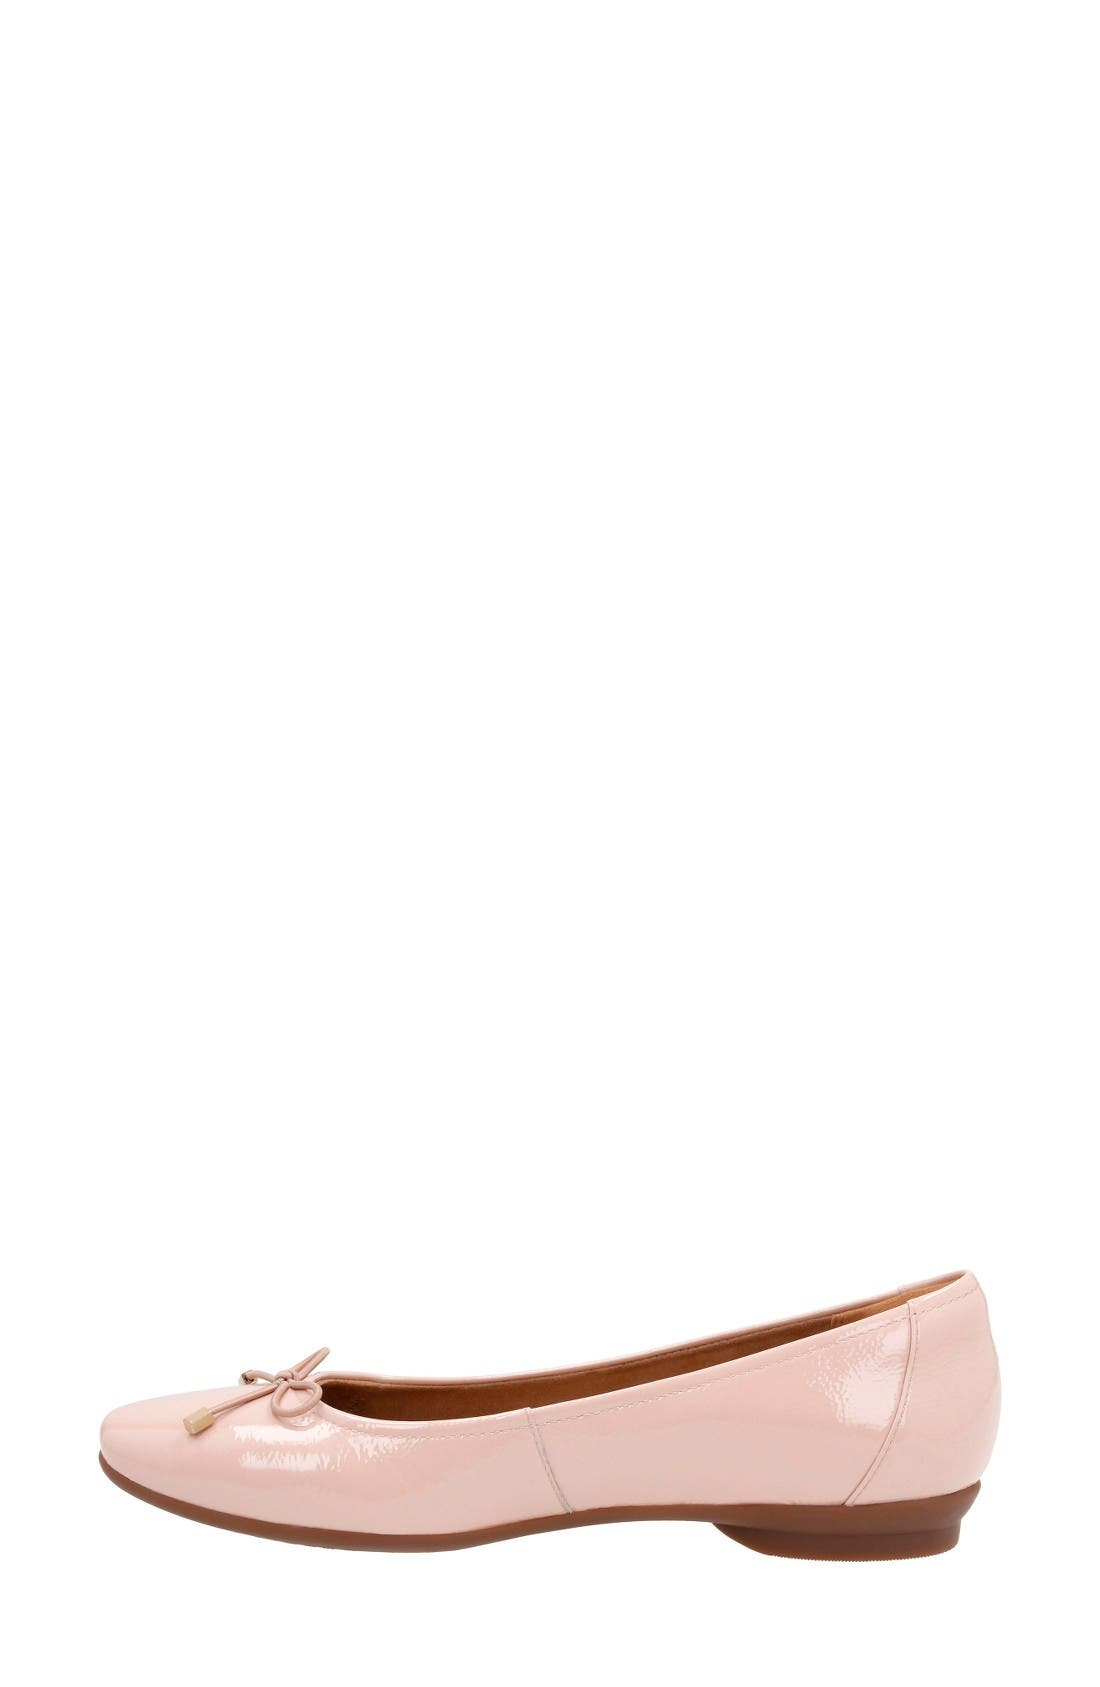 'Candra Light' Flat,                             Alternate thumbnail 2, color,                             Dusty Pink Patent Leather